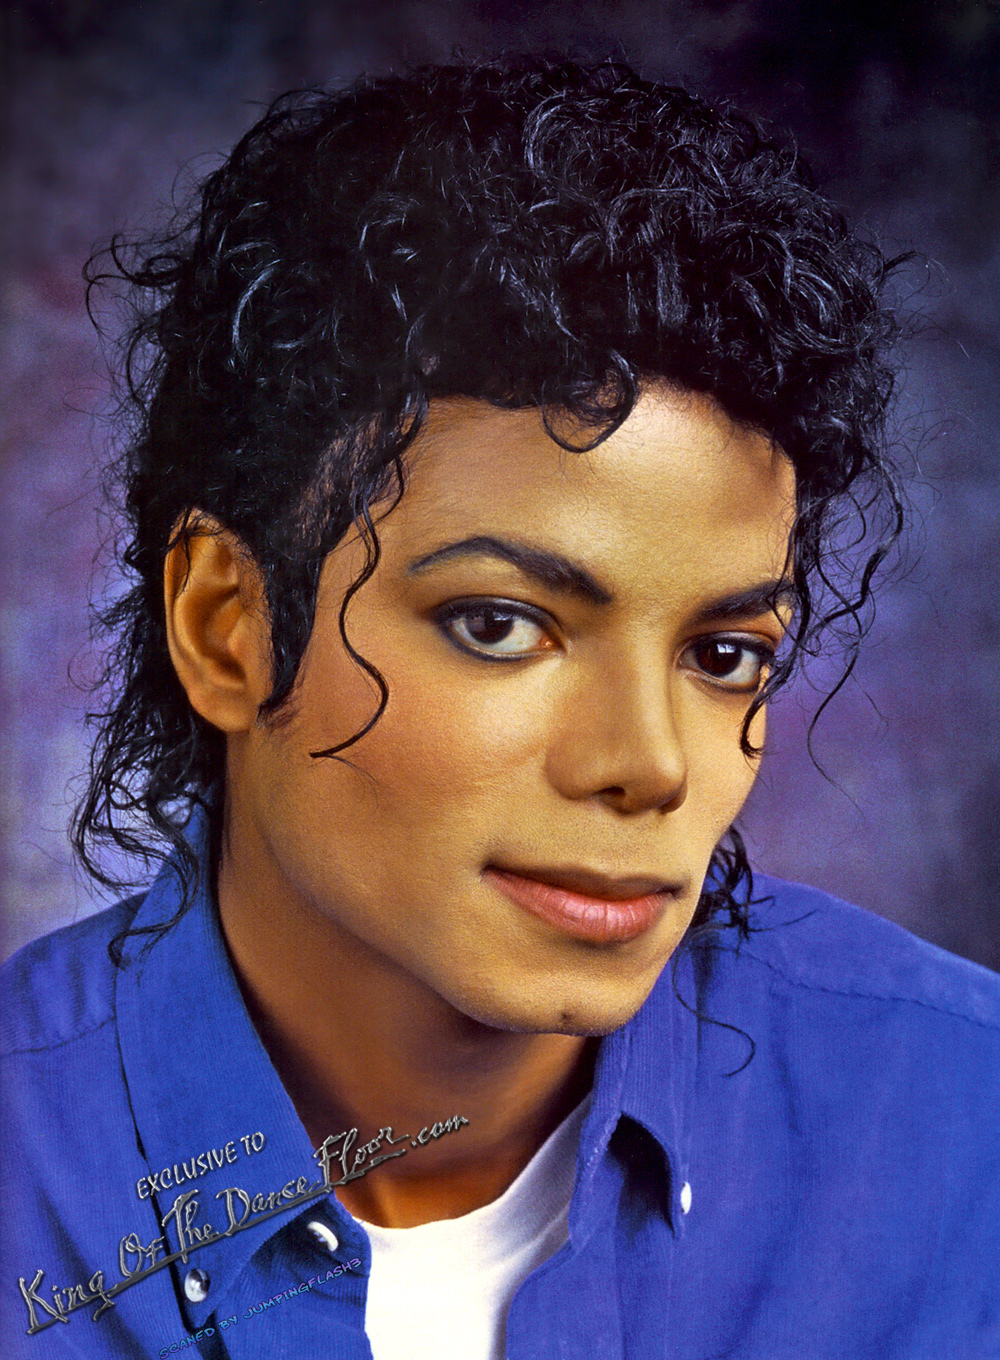 Jackson-Photoshoots-HQ-King-of-POP-michael-jackson-31018318-1000-1360